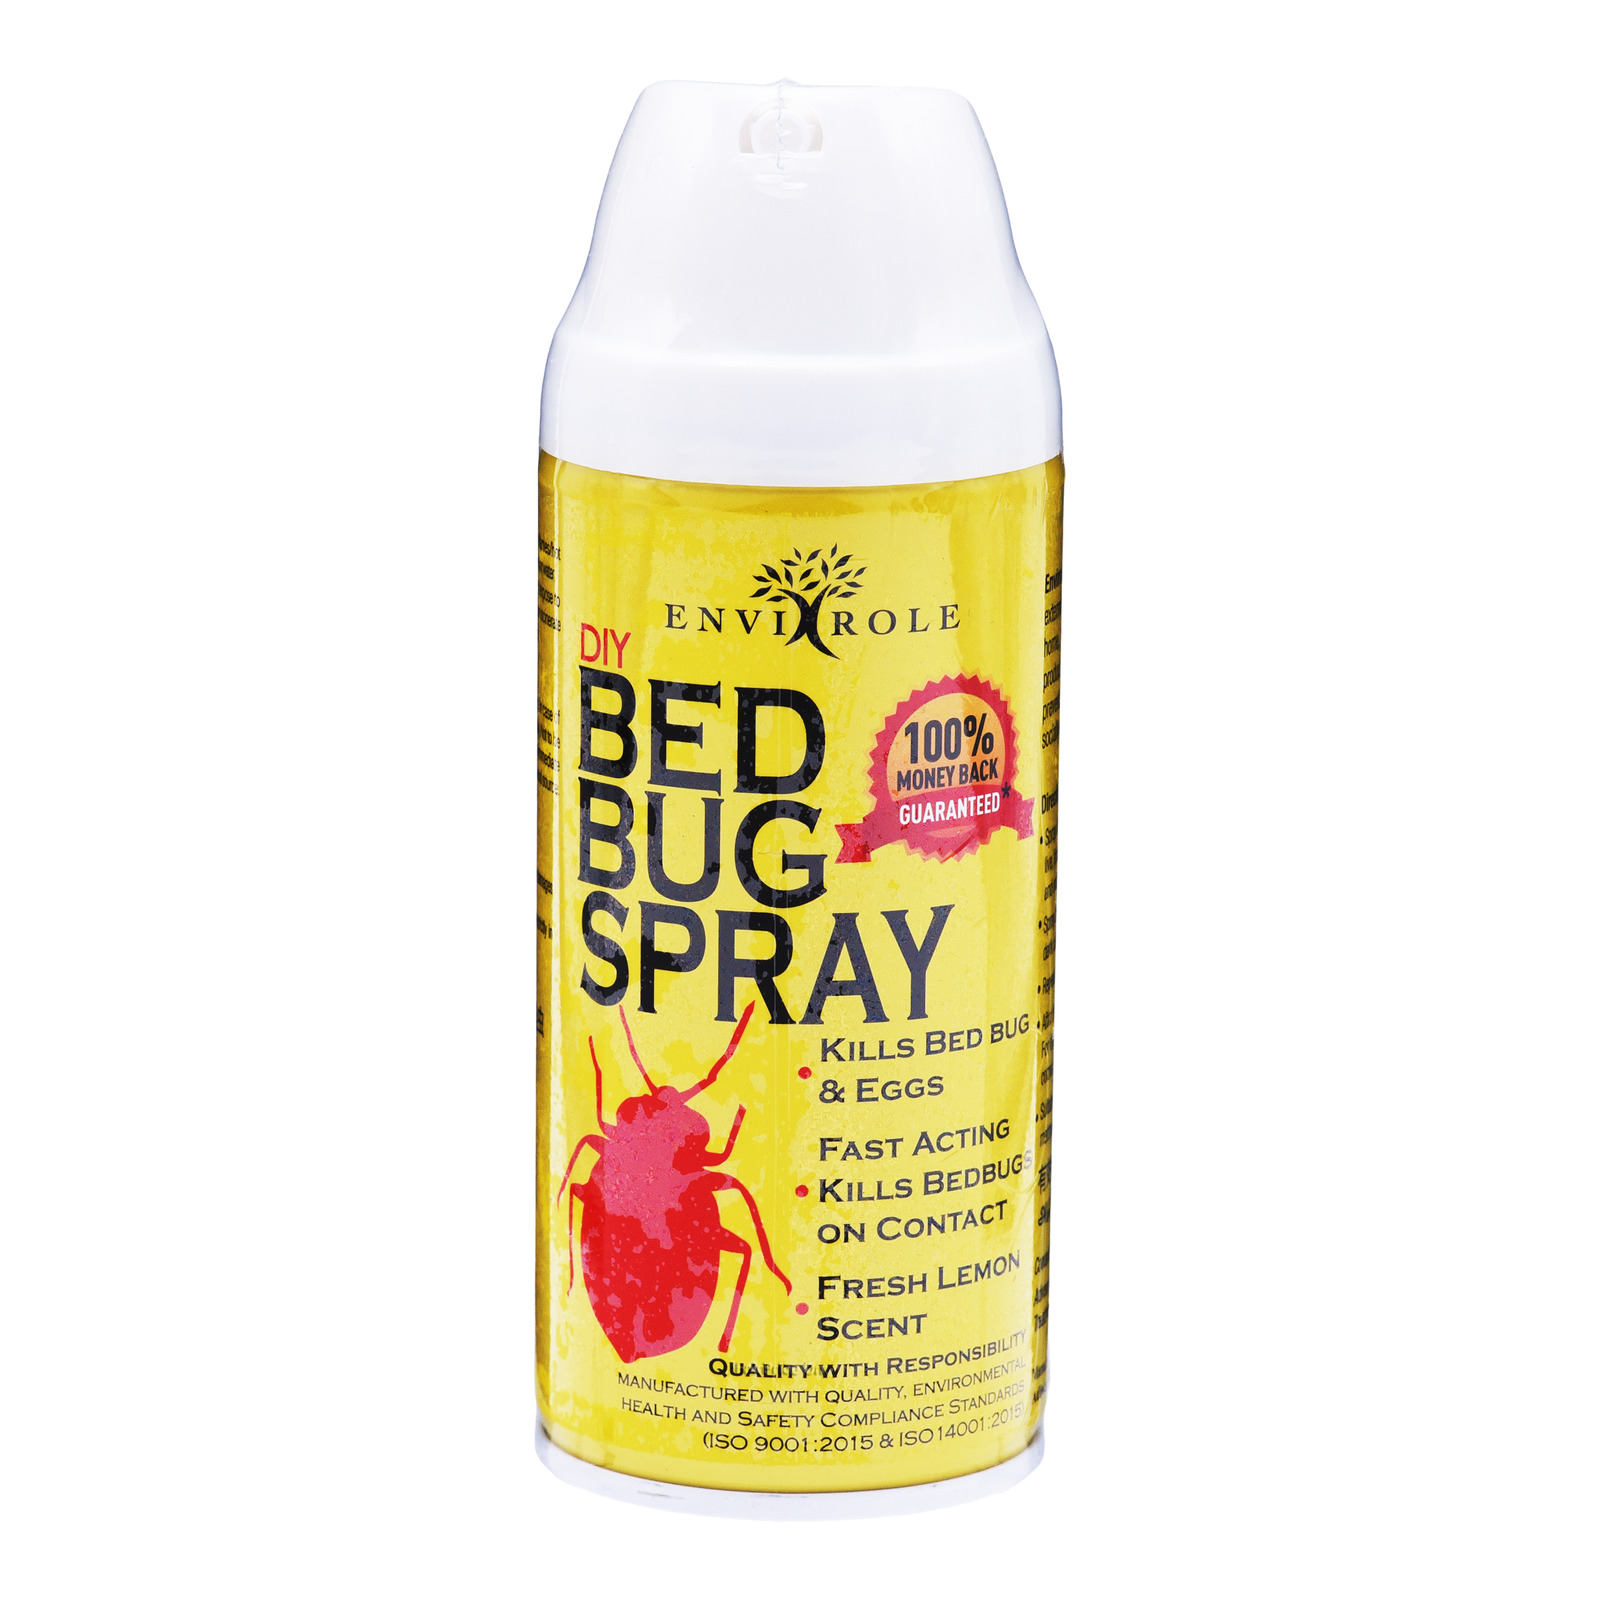 Envirole Bed Bug Aerosol Spray Ntuc Fairprice